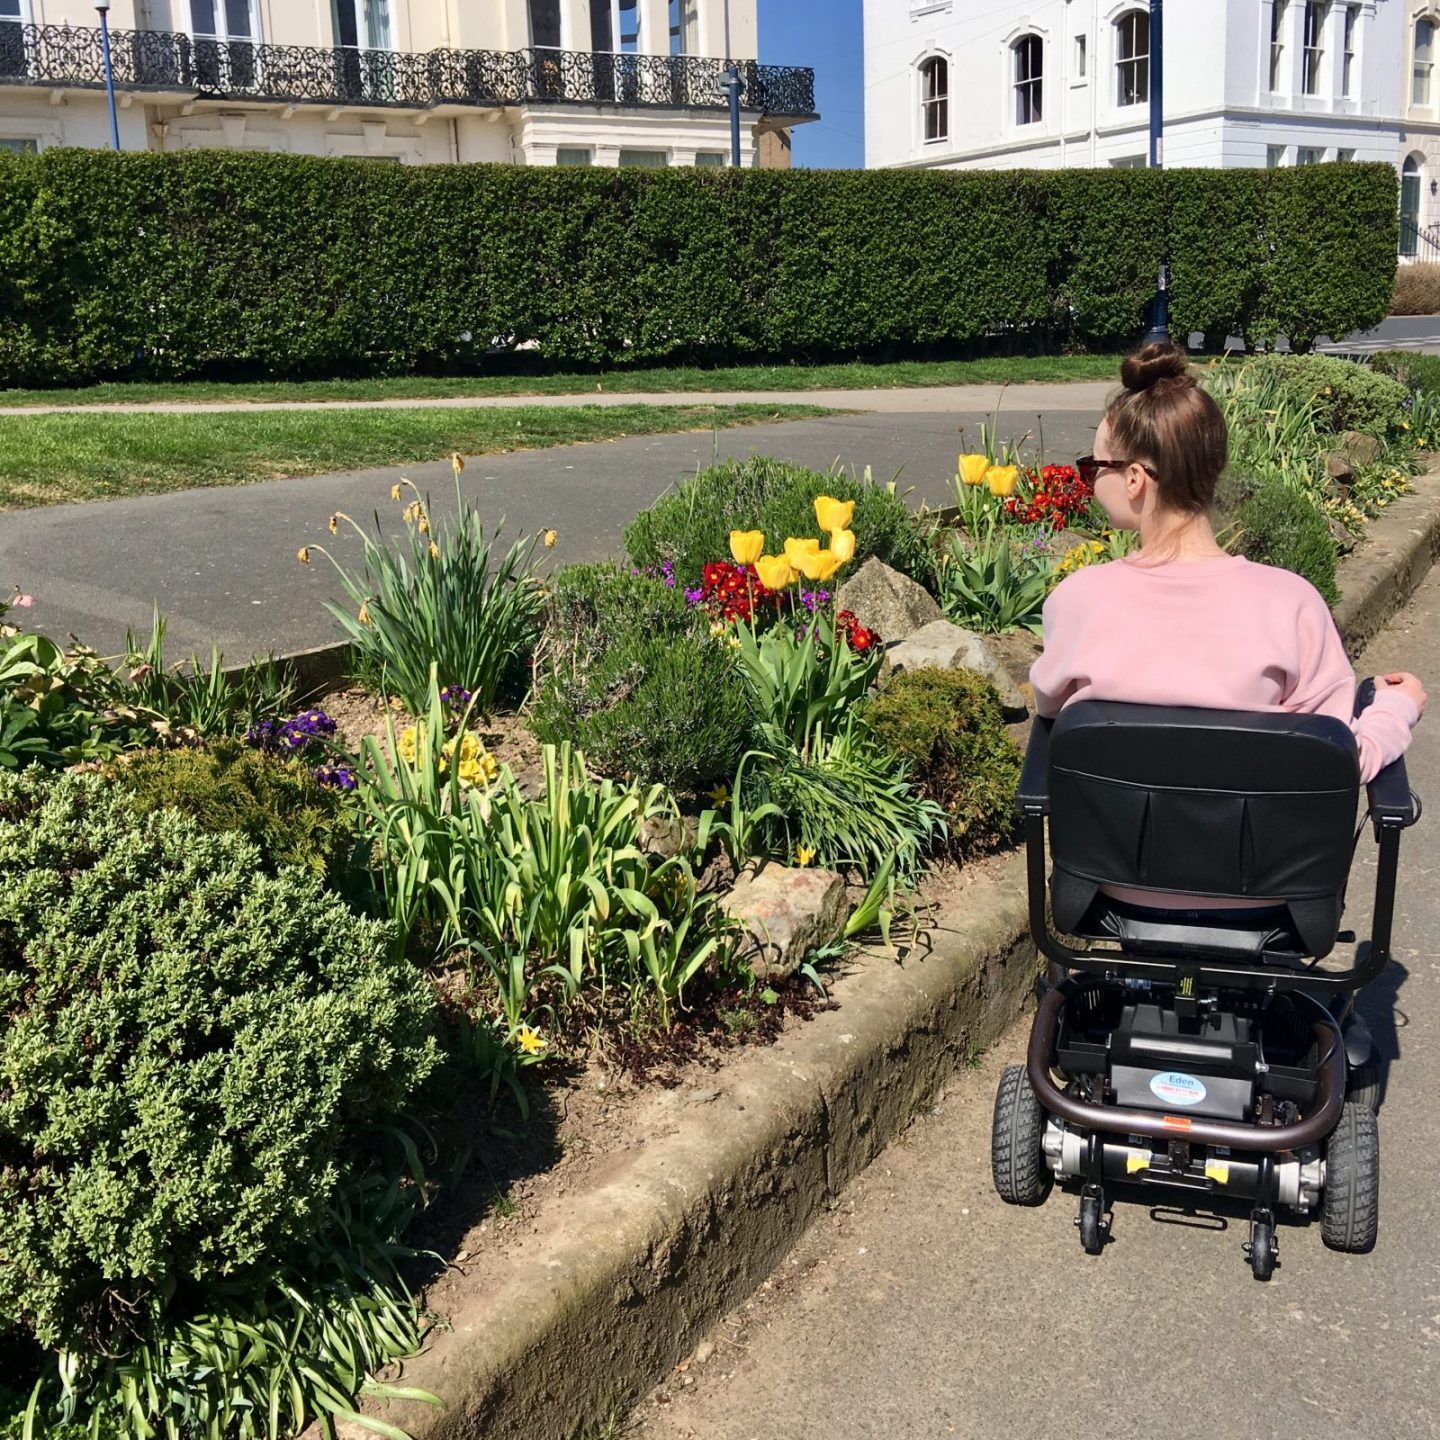 Blue Badges and Invisible Illness – My Experiences